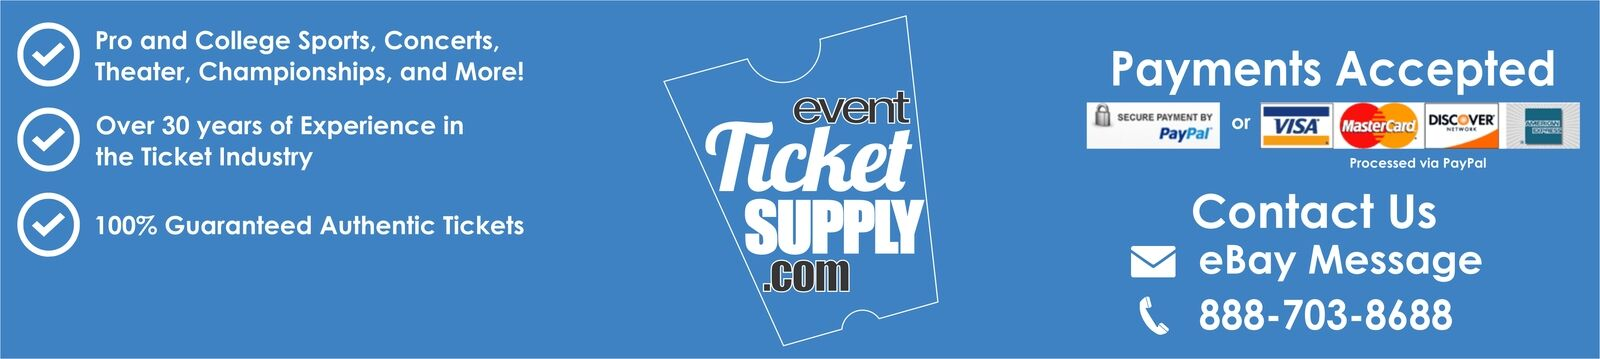 Event Ticket Supply